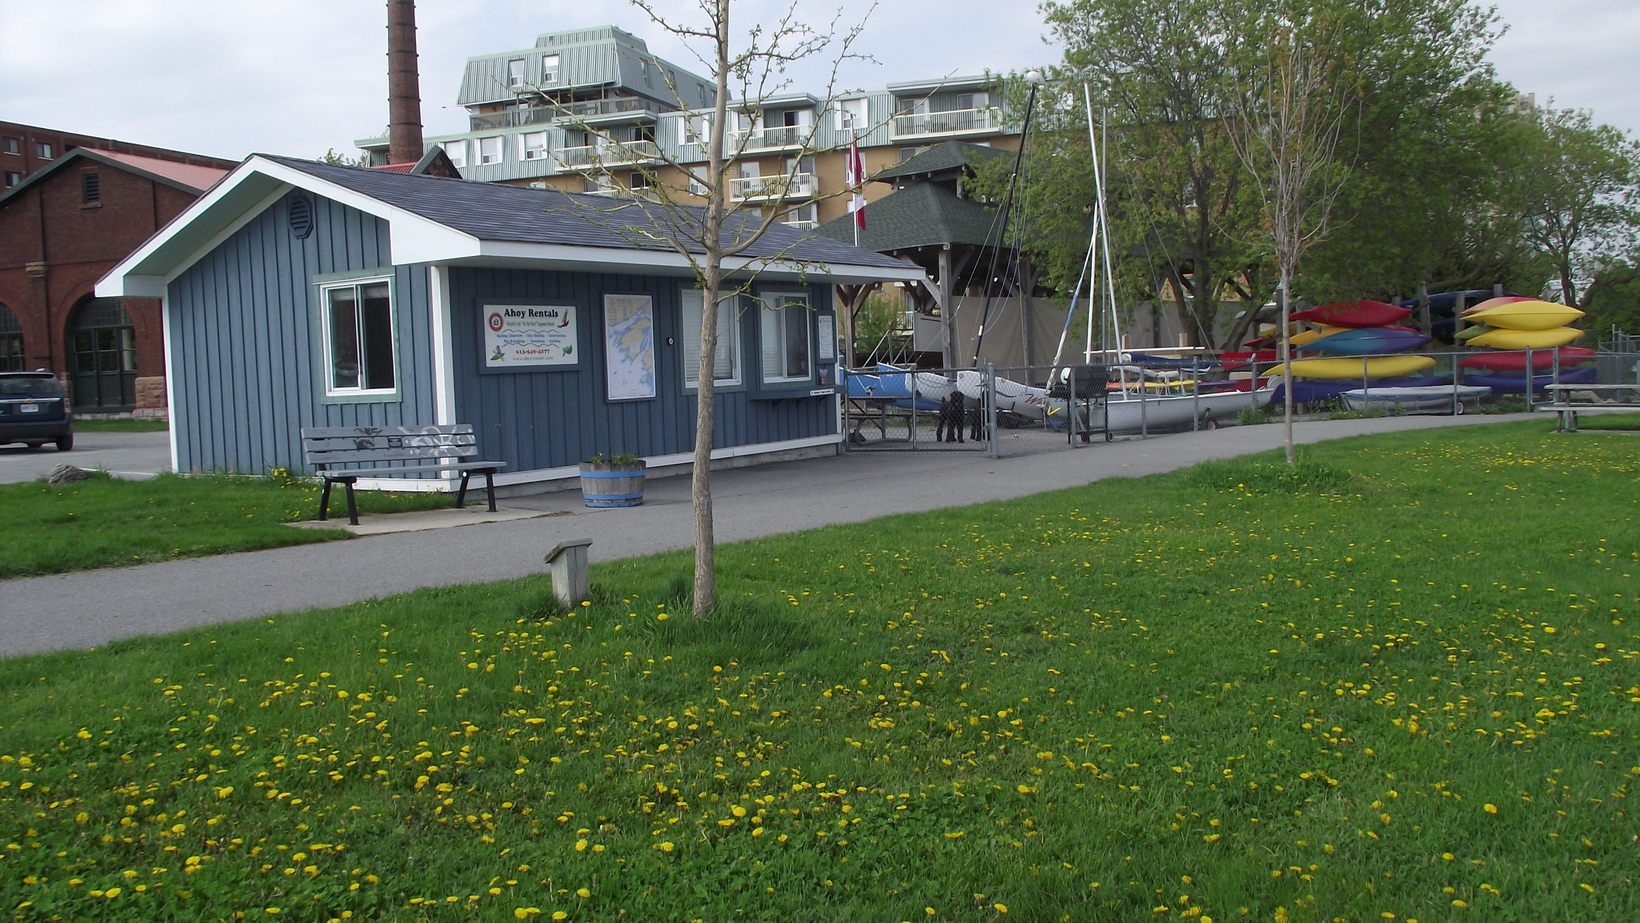 Ahoy Rentals - Waterfront location for all your paddling and sailing fun.  2019 Opening - Saturday May 18